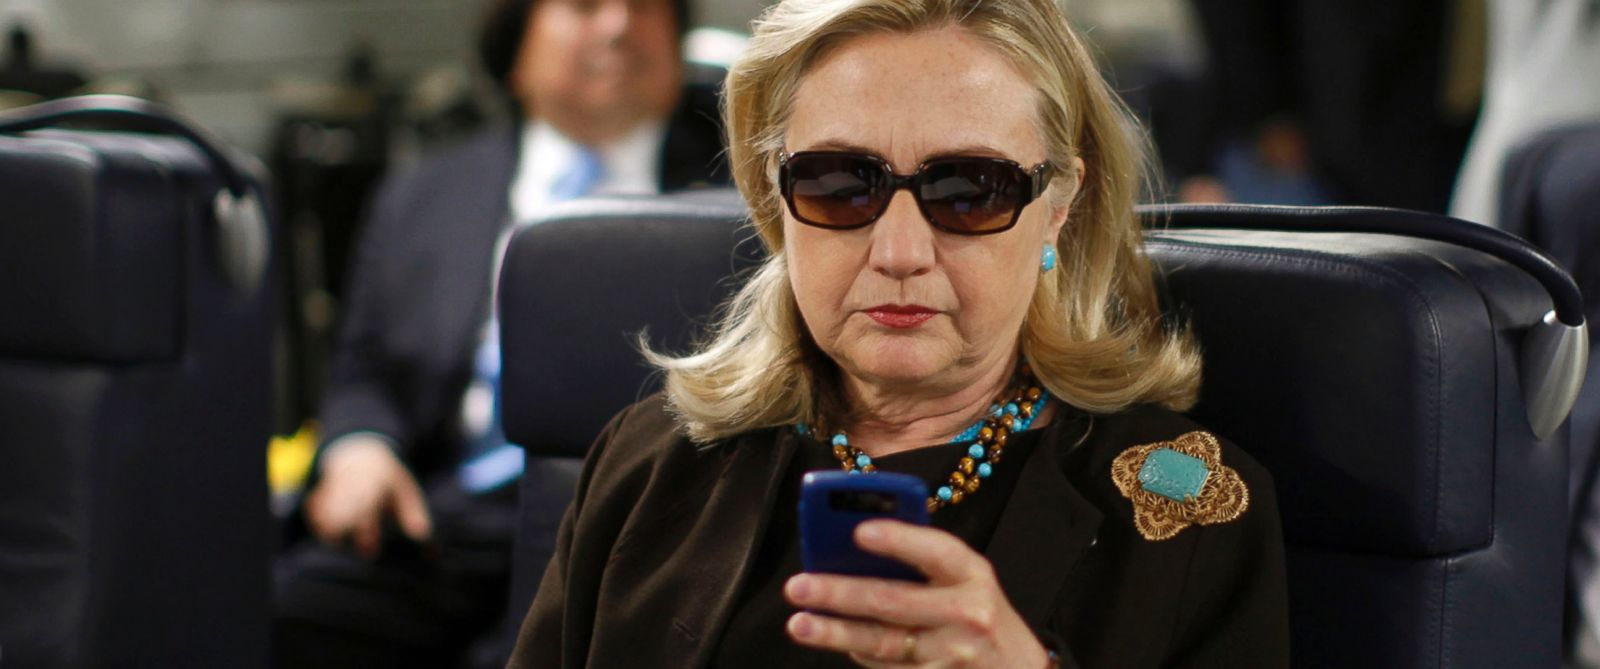 hillary-reviewing-her-damn-emails